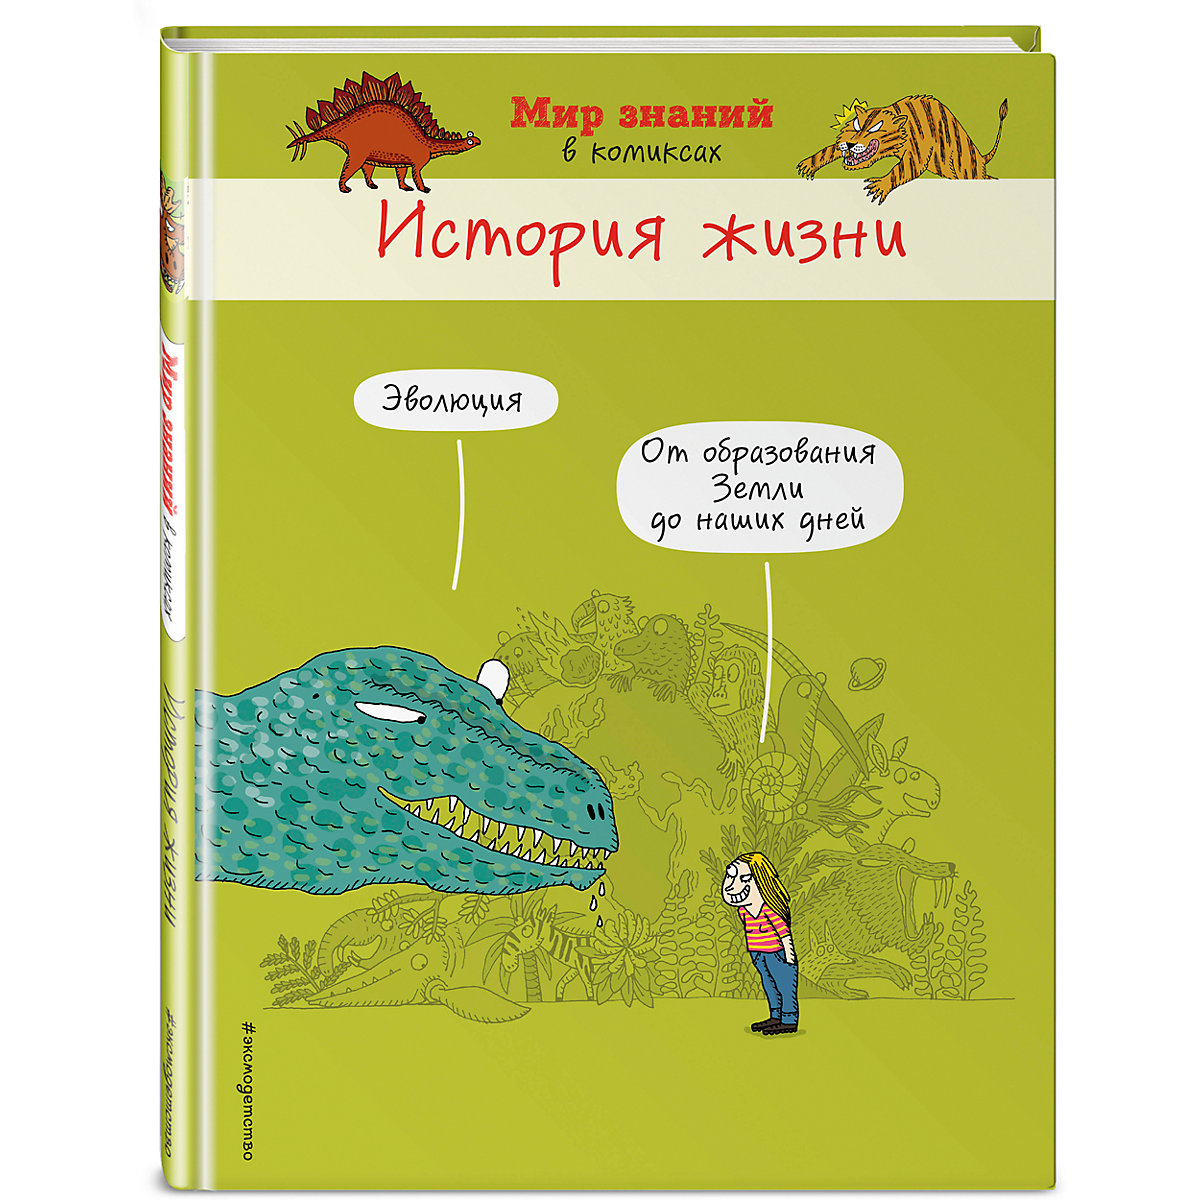 Books EKSMO 10083533 Children Education Encyclopedia Alphabet Dictionary Book For Baby MTpromo